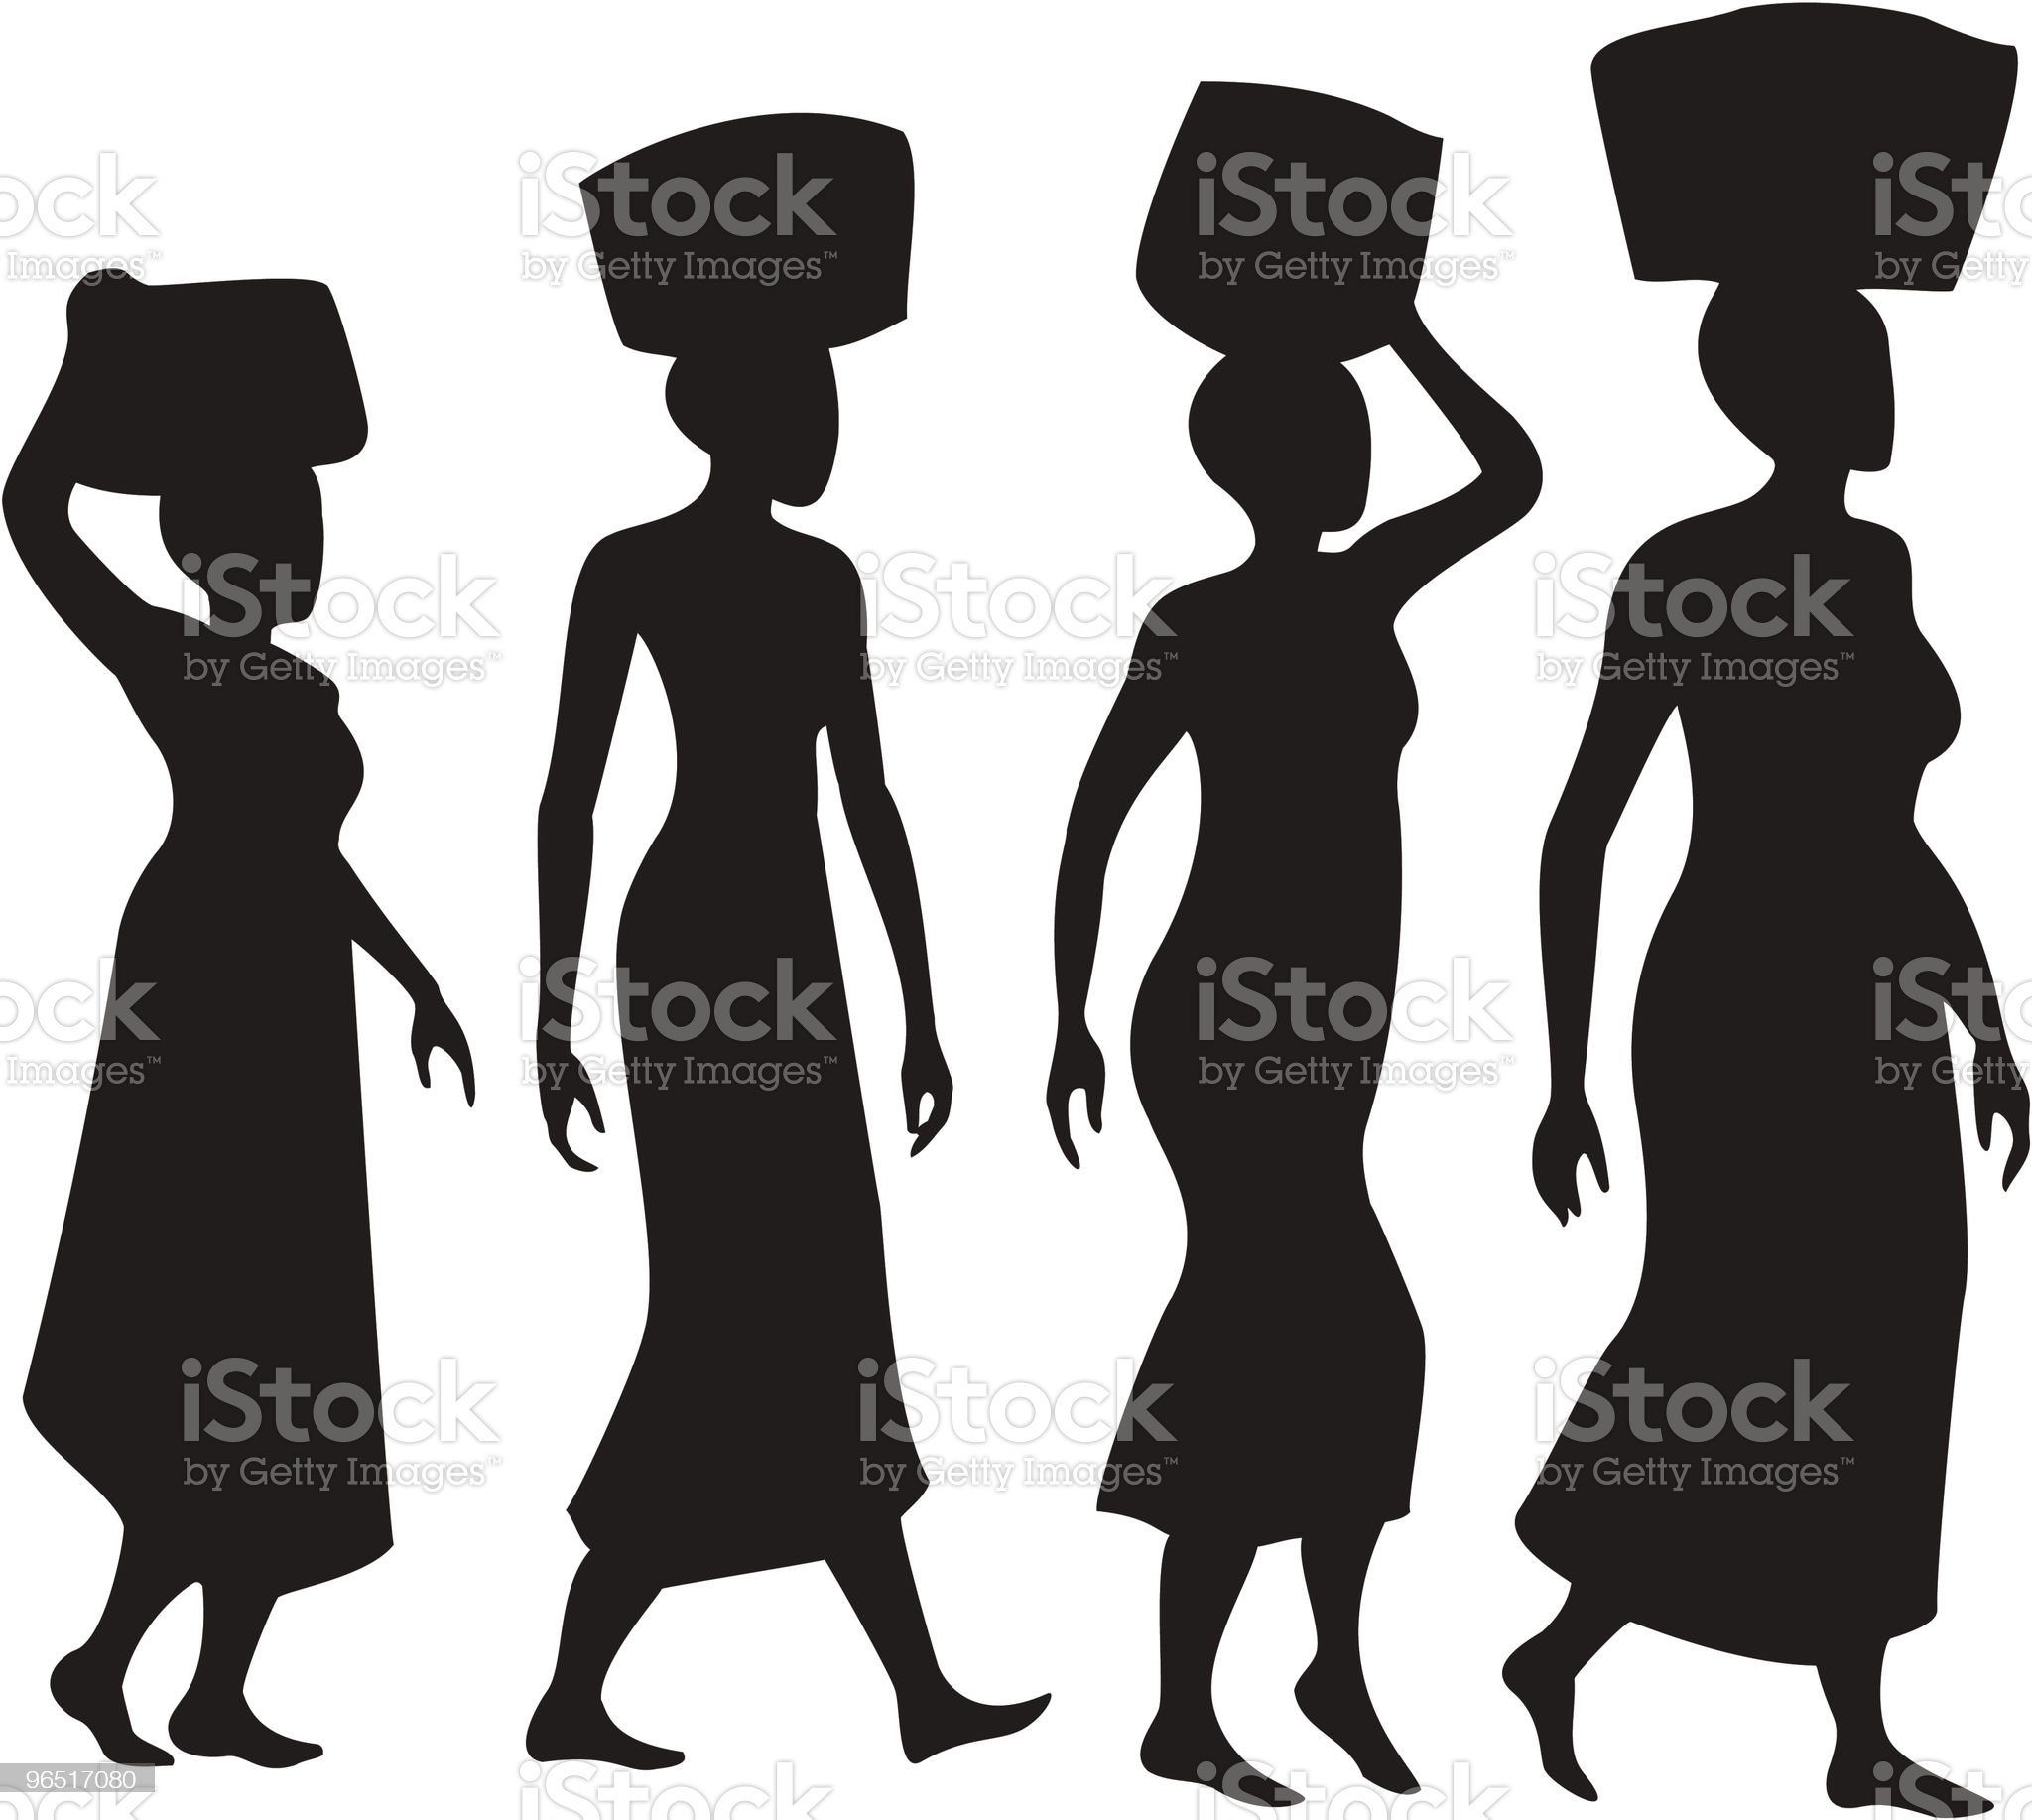 Women balancing baskets on heads Silhouettes royalty-free stock vector art